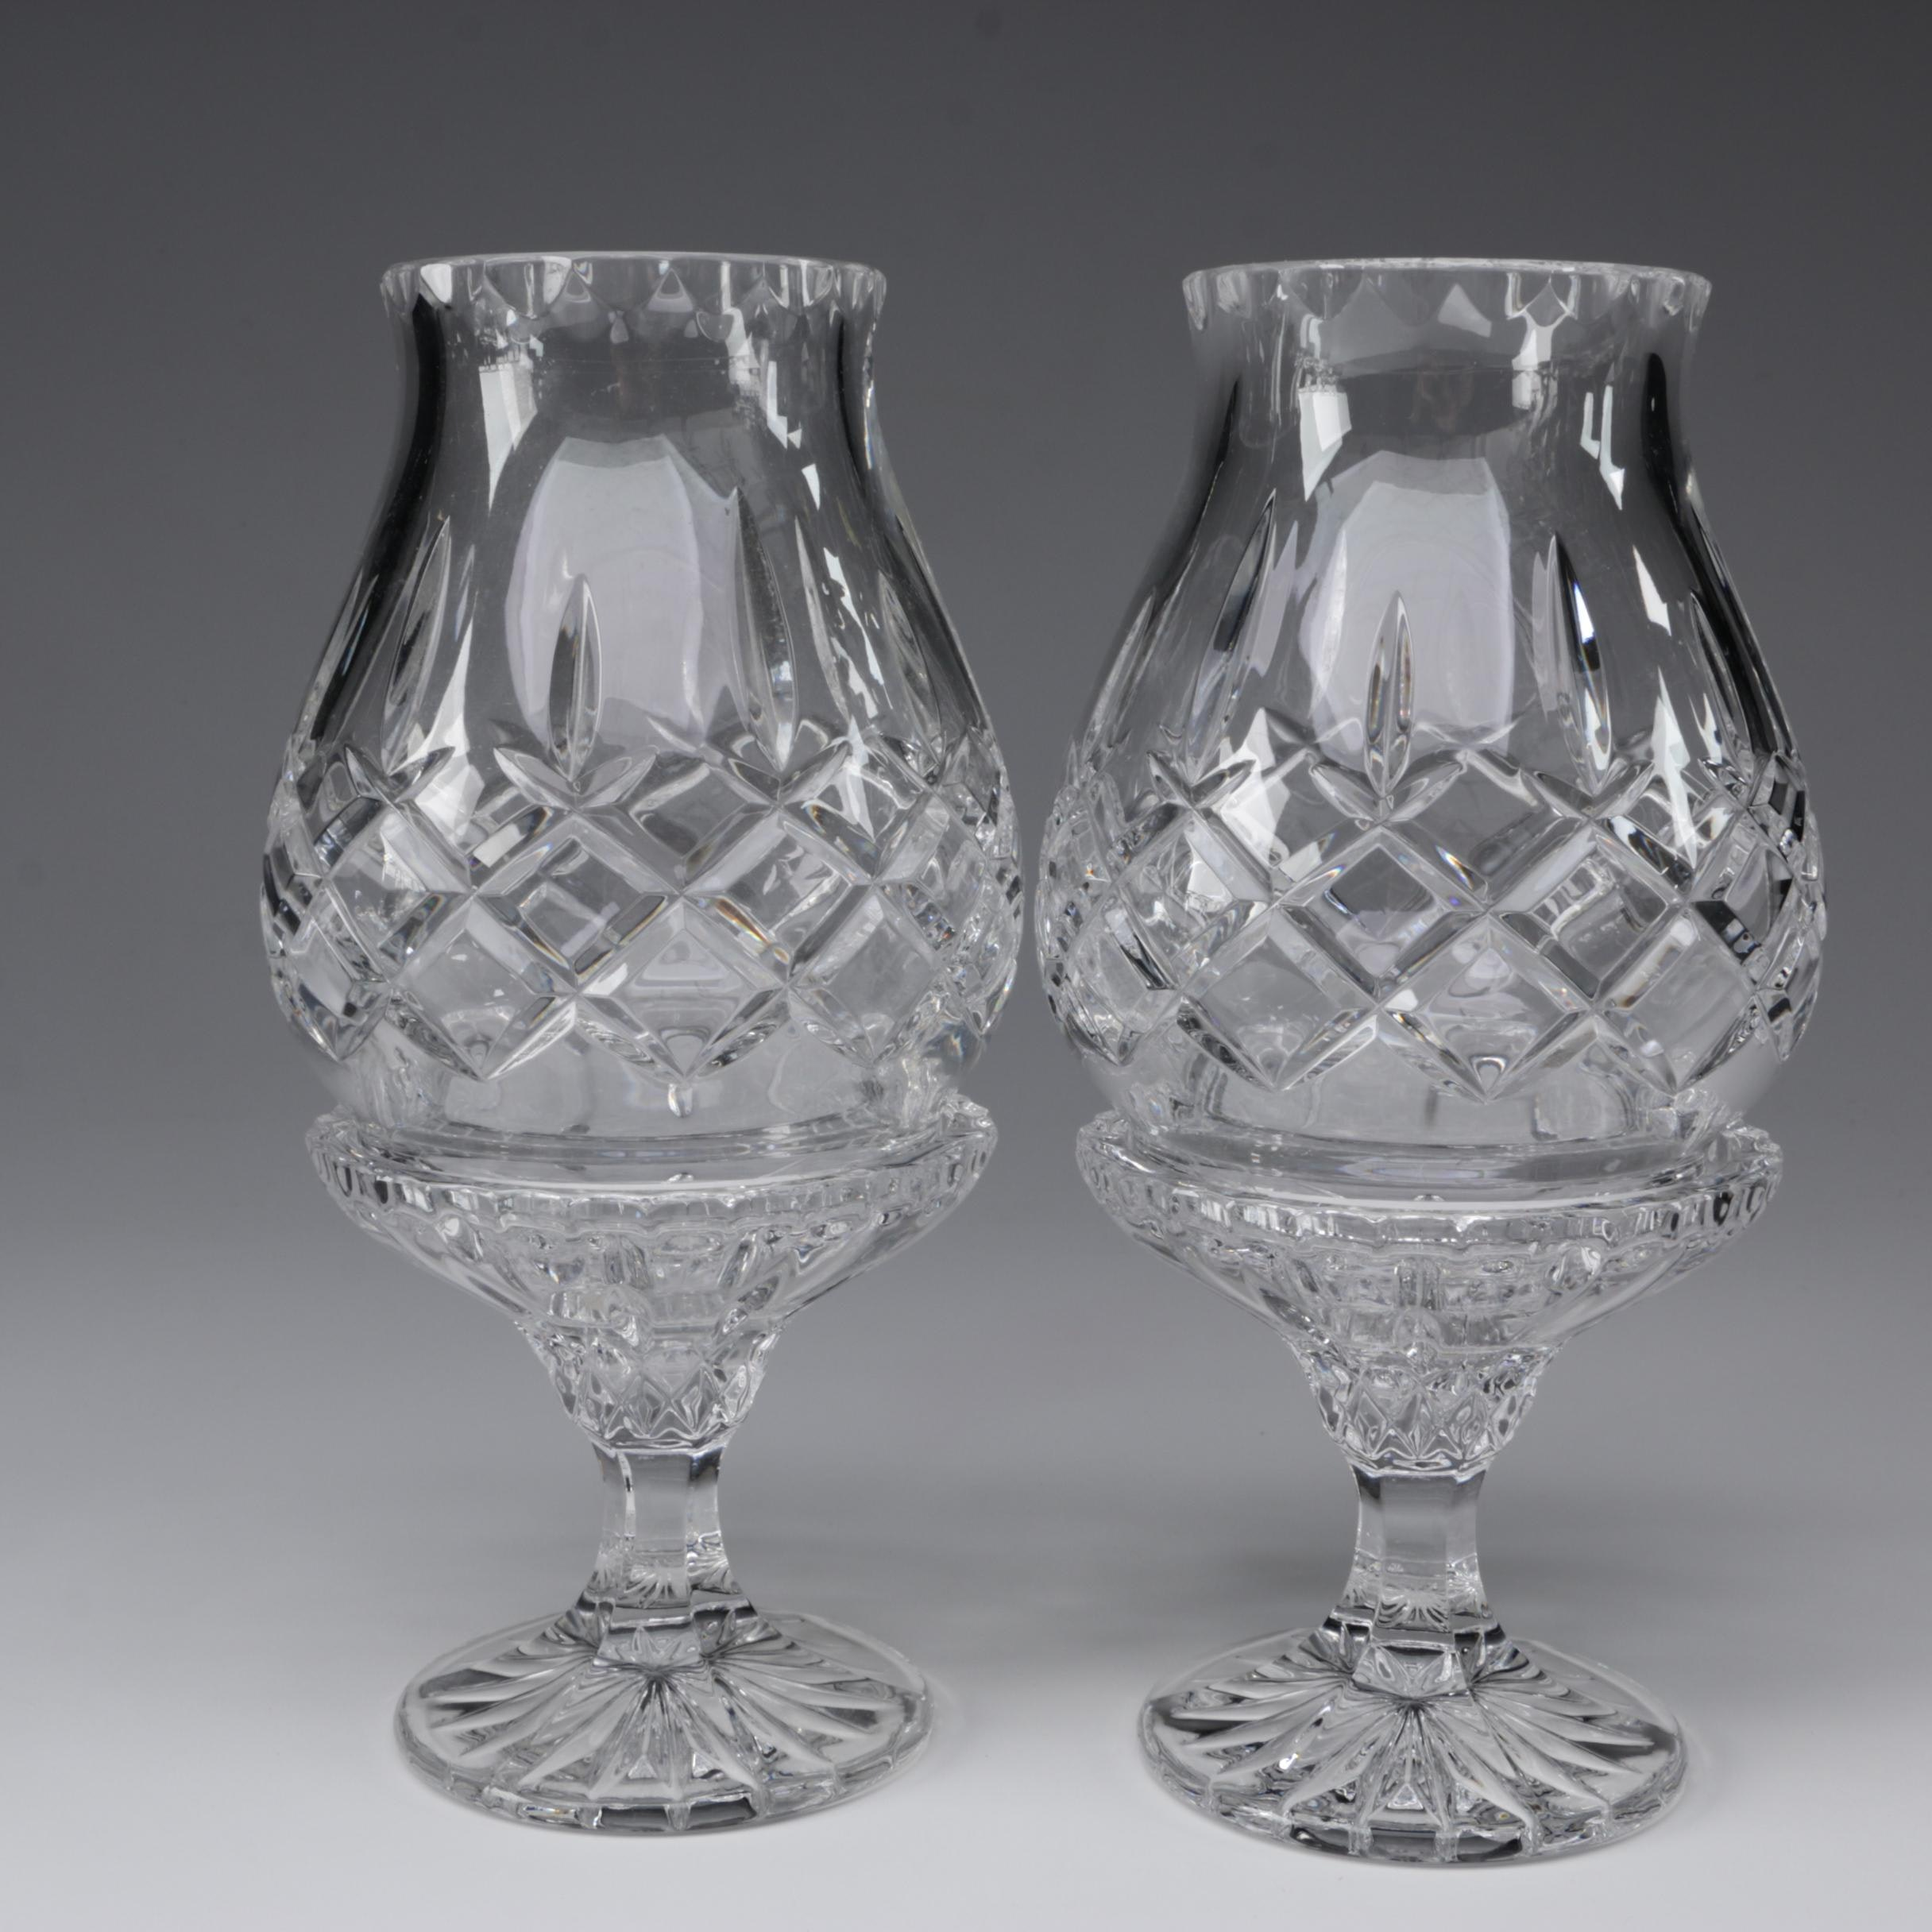 Footed Crystal Hurricane Candle Holders After Waterford Crystal